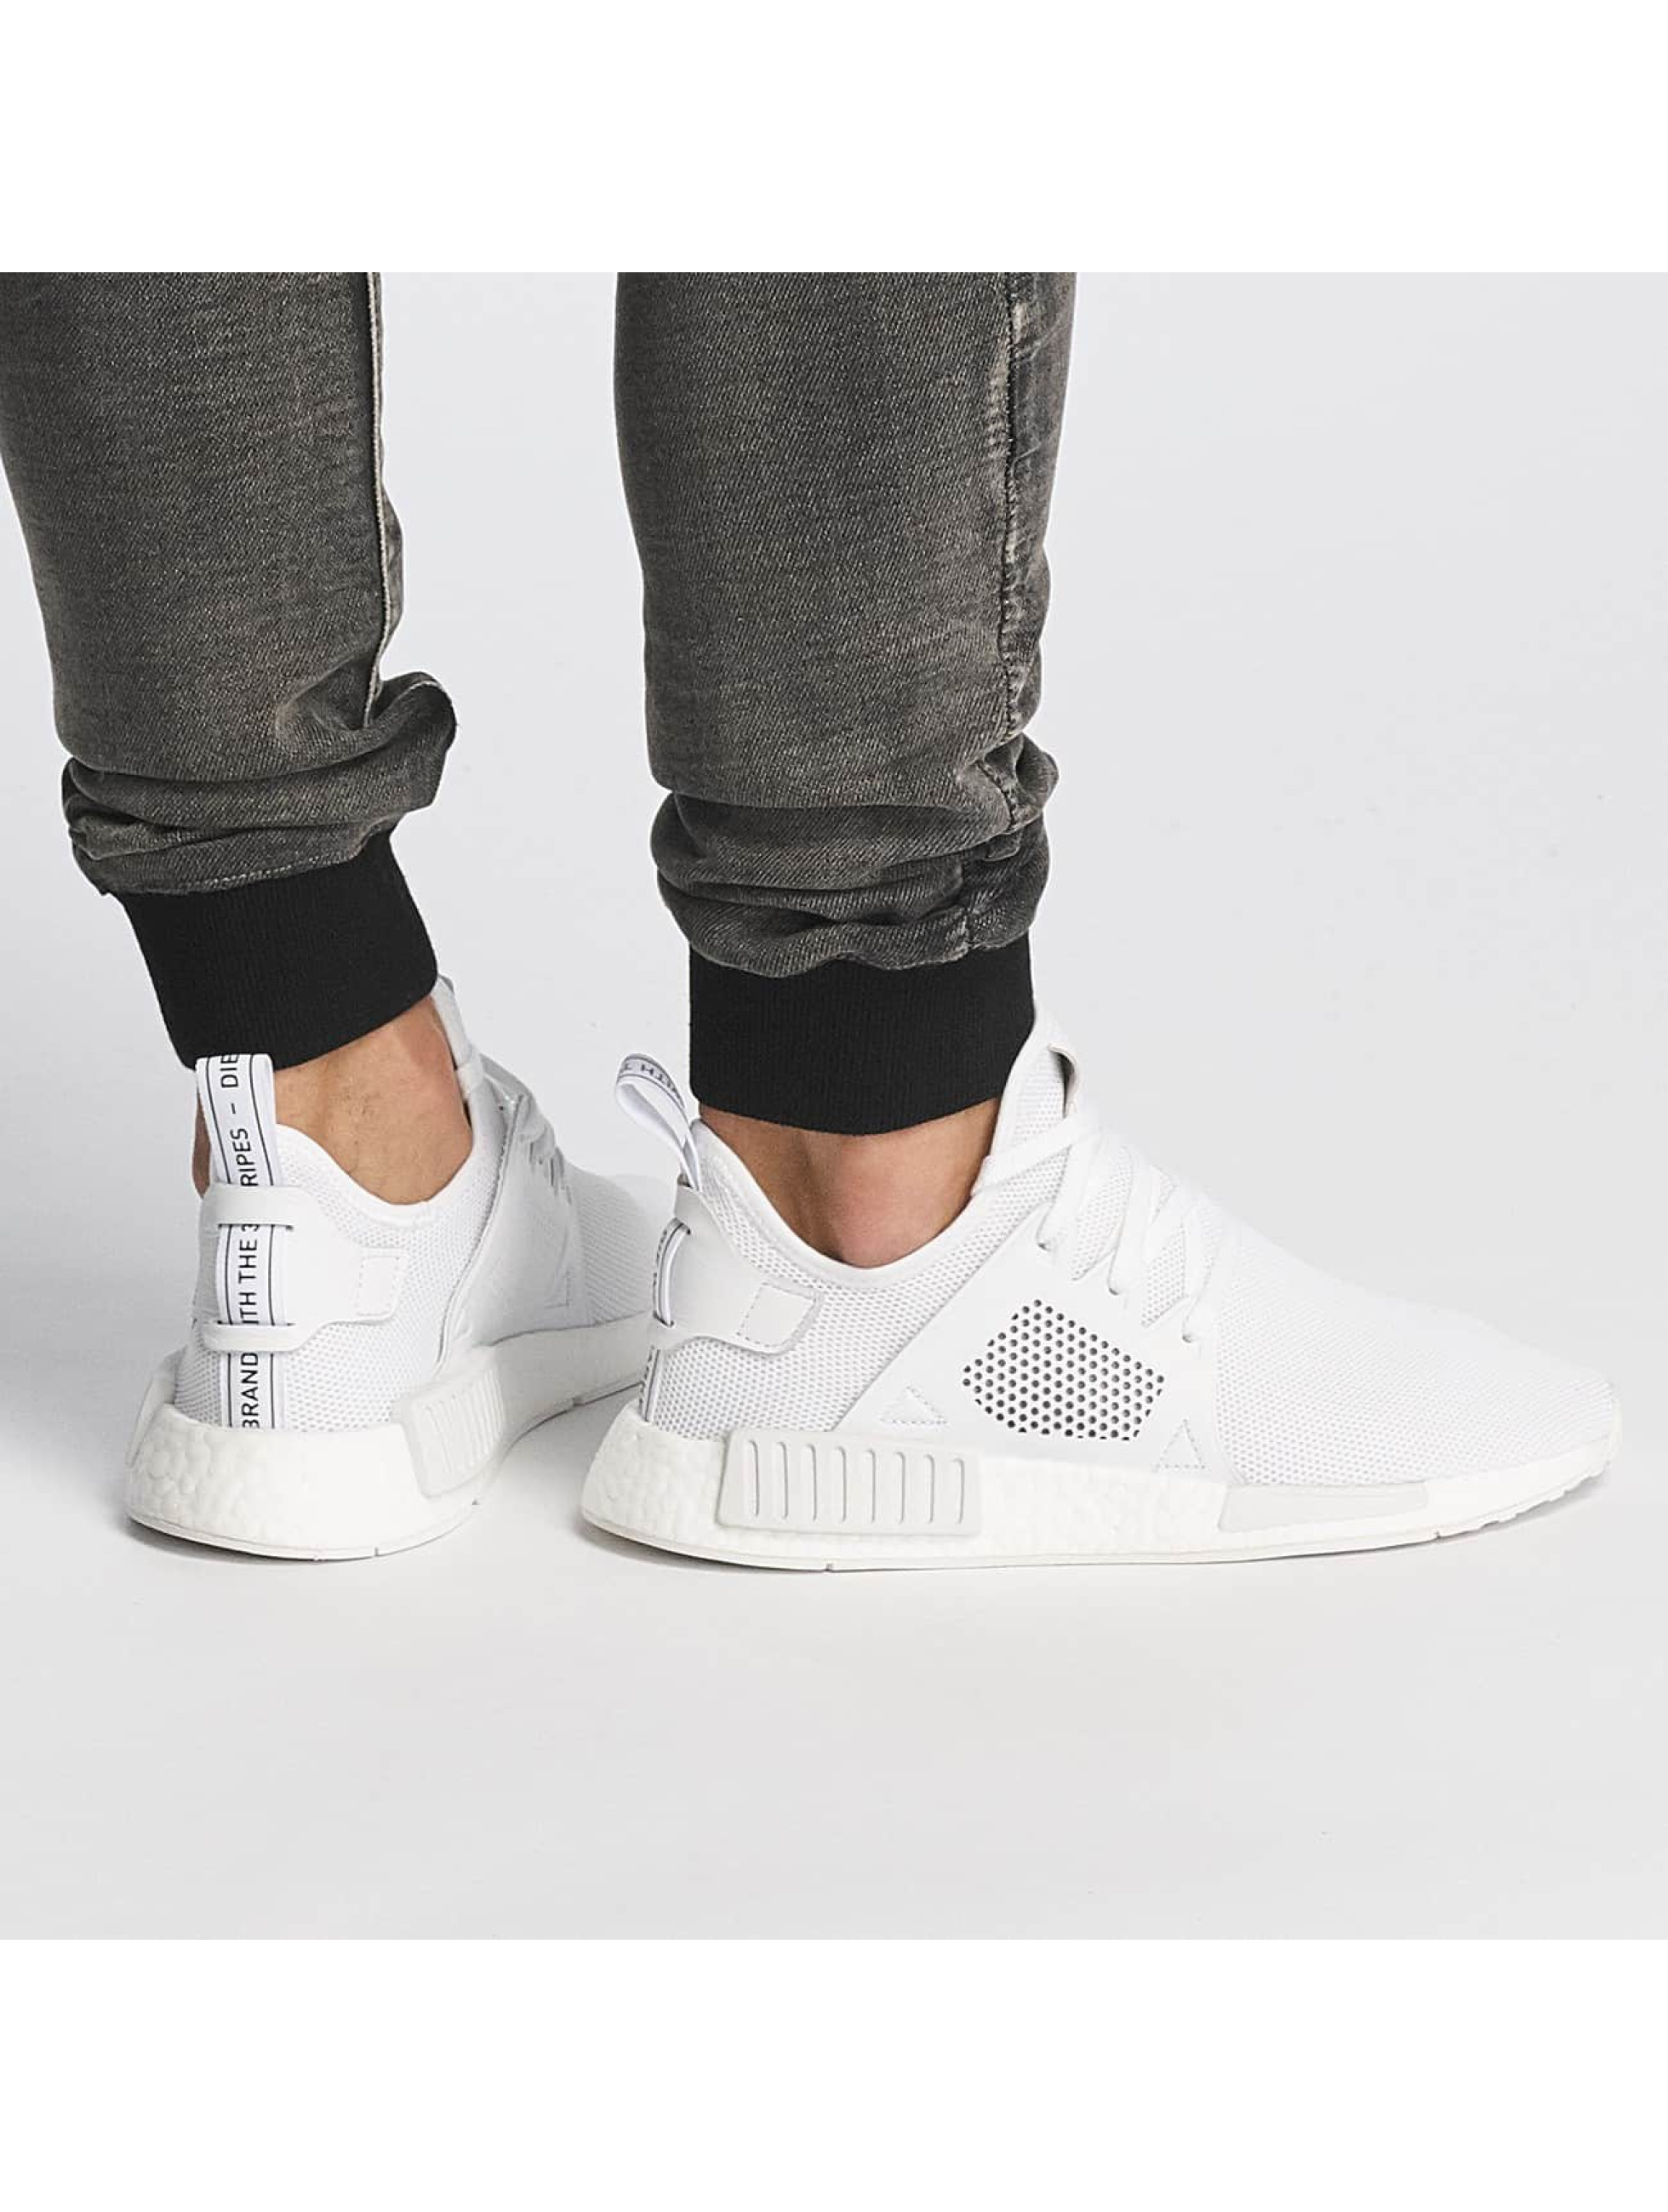 adidas Sneakers NMD_XR1 white